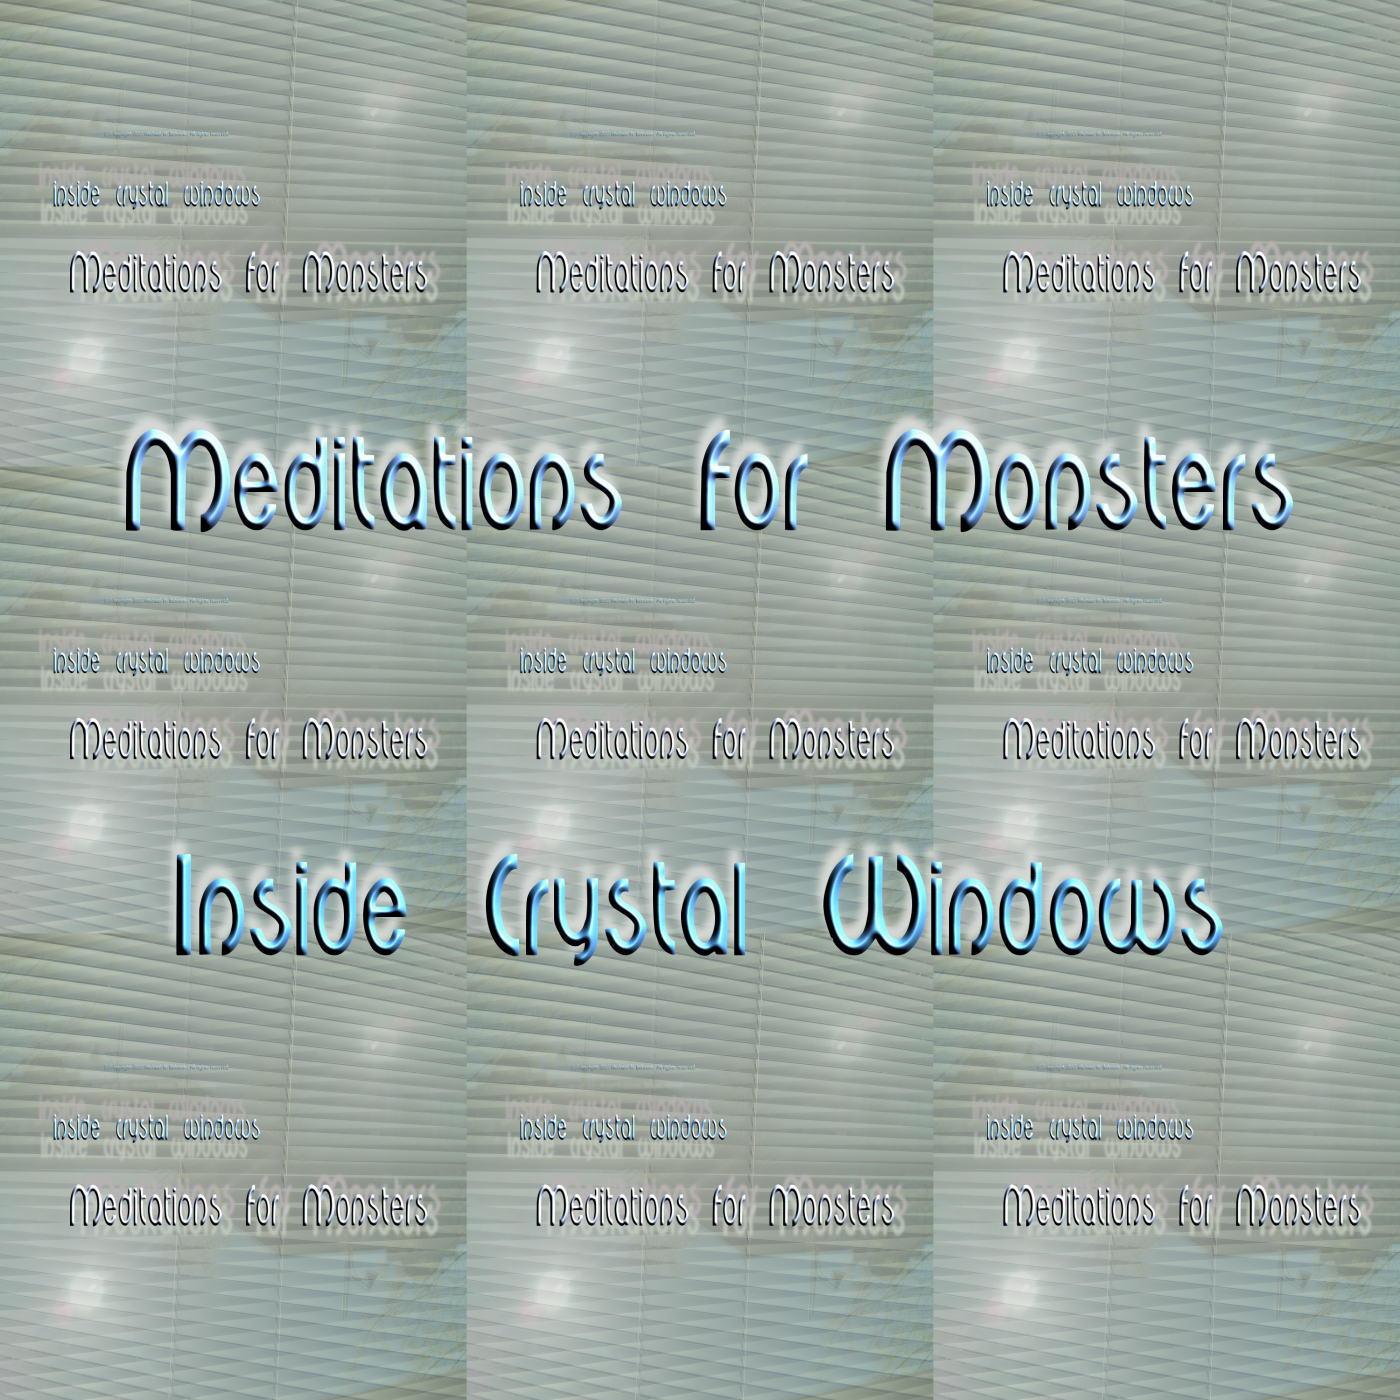 Meditations For Monsters - inside crytal windows